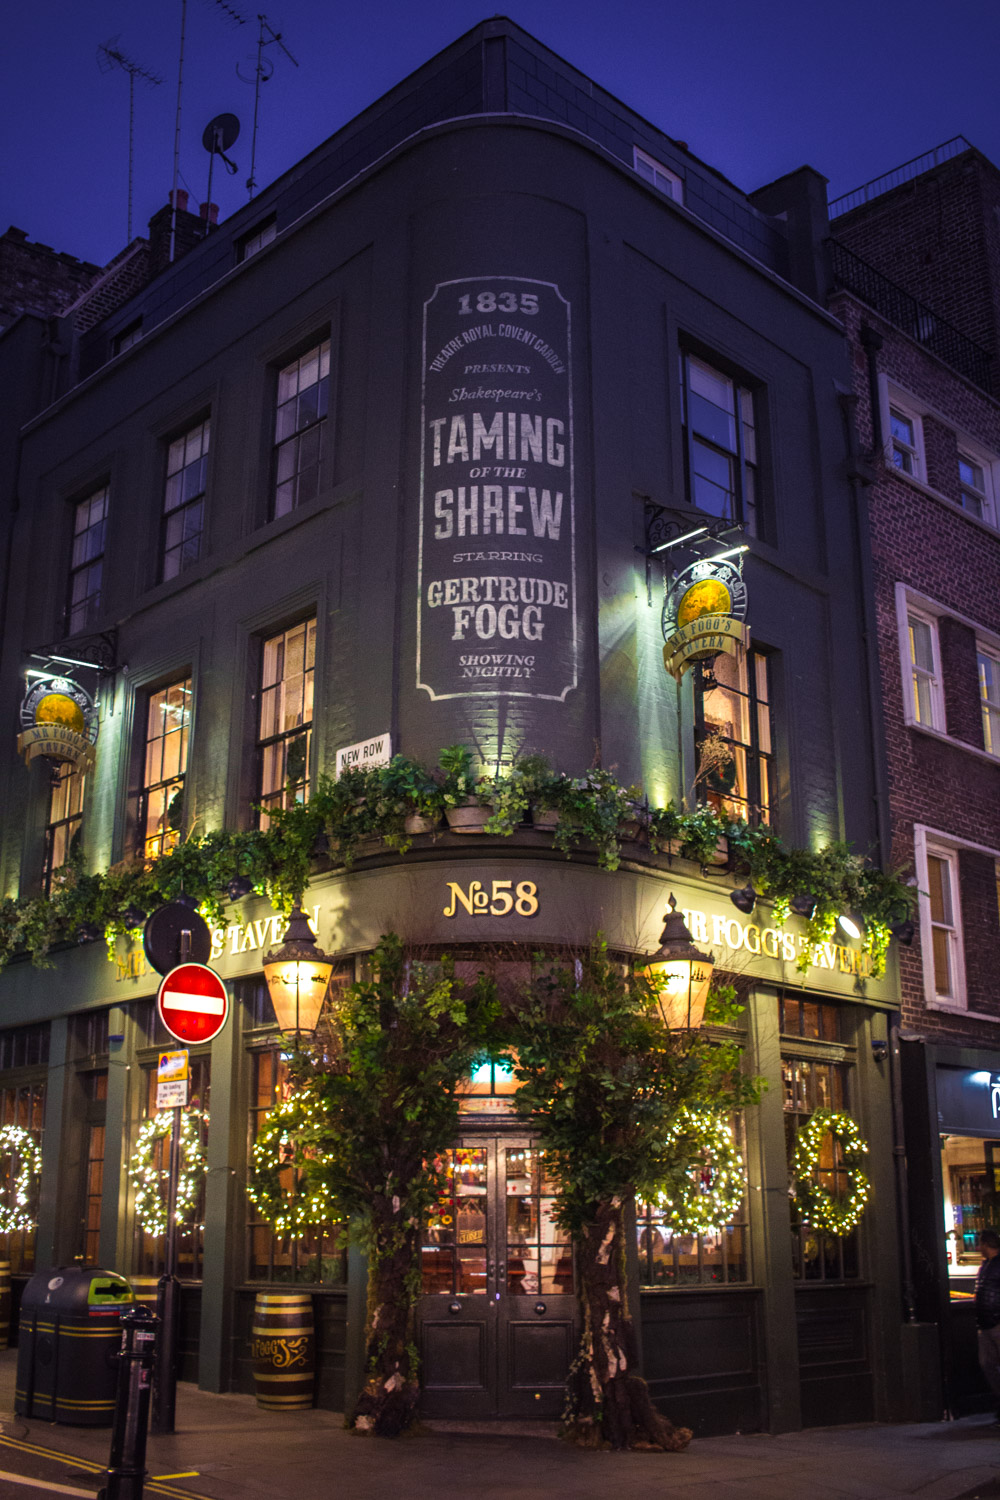 Mr. Fogg's Tavern in London